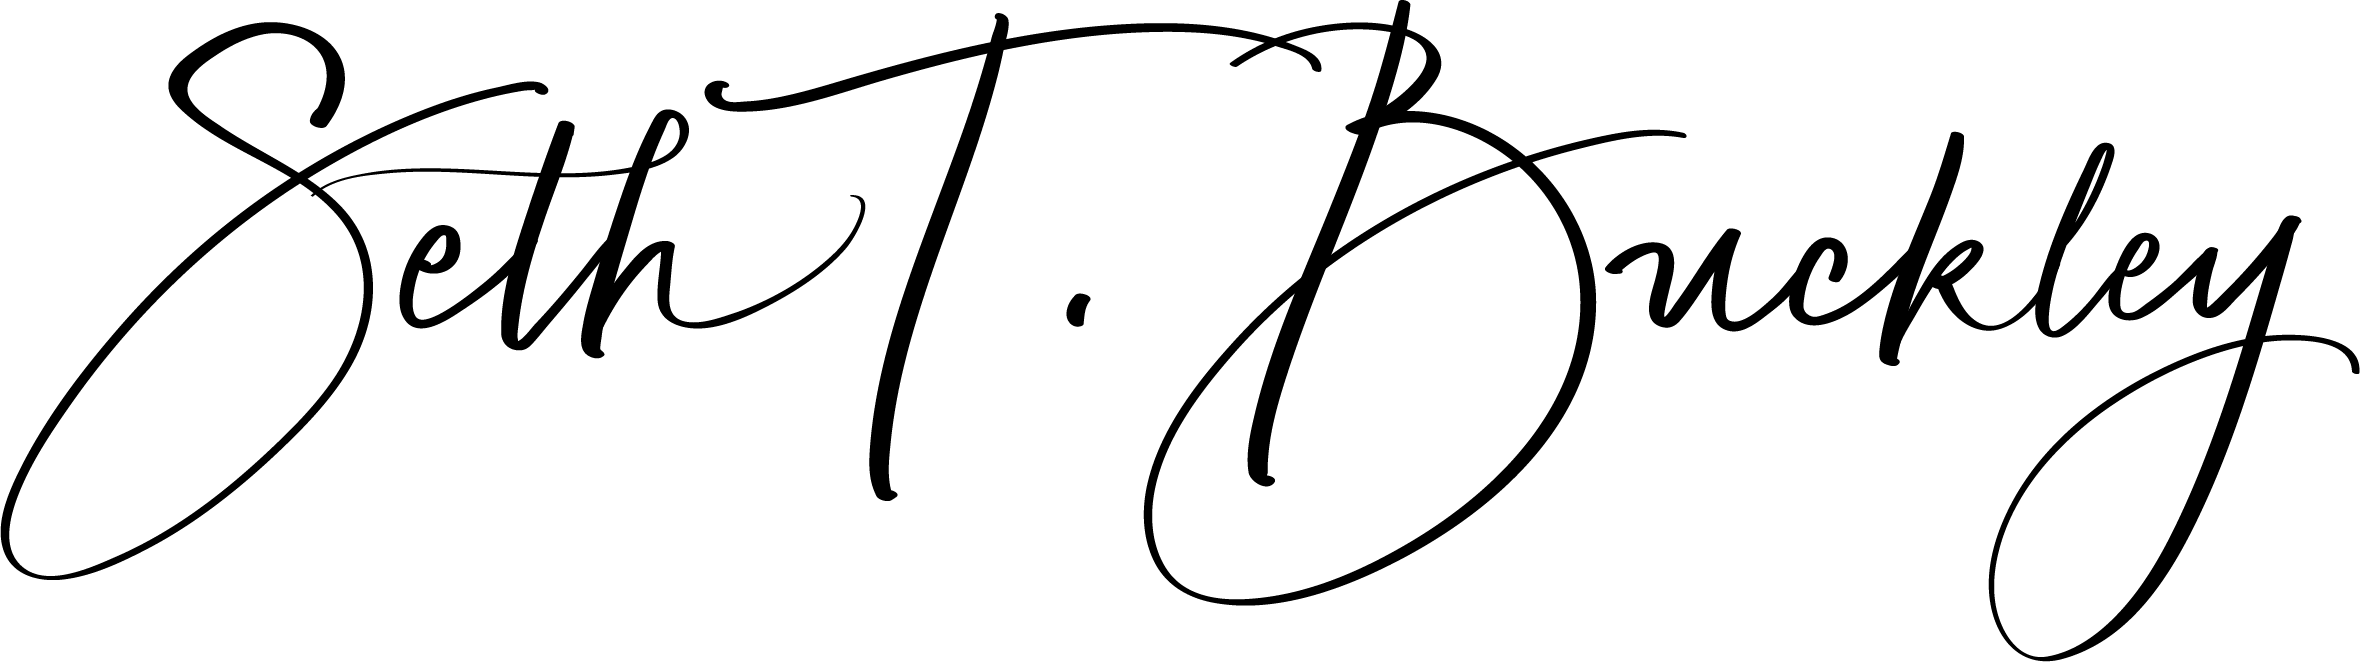 Seth T Buckley Signature (no title).png